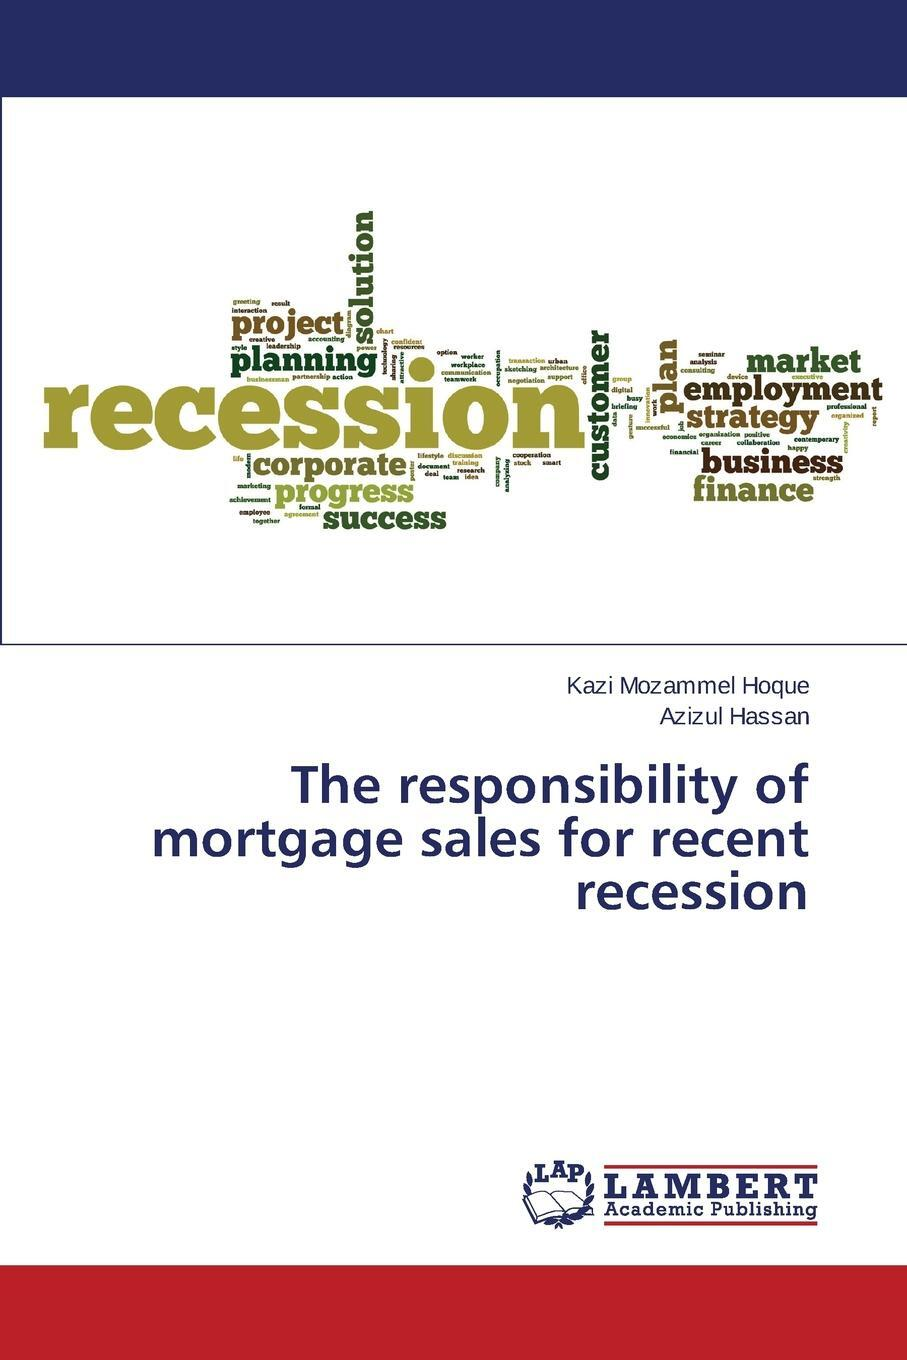 The responsibility of mortgage sales for recent recession. Hoque Kazi Mozammel, Hassan Azizul